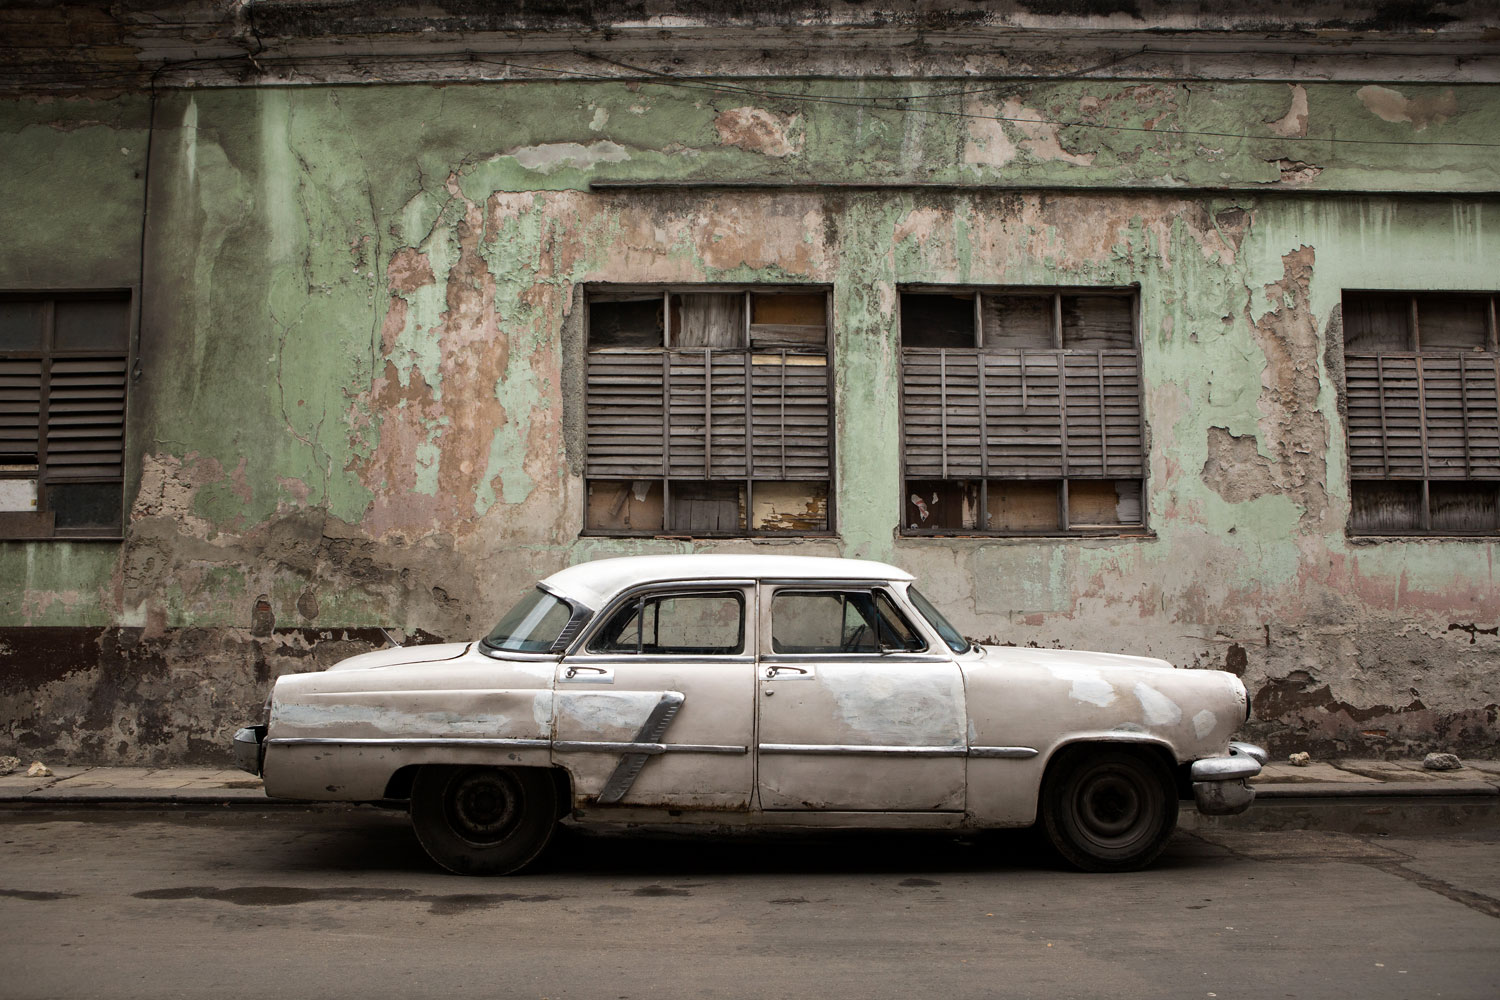 A classic American car in front of a green wall in Centro Havana, Cuba